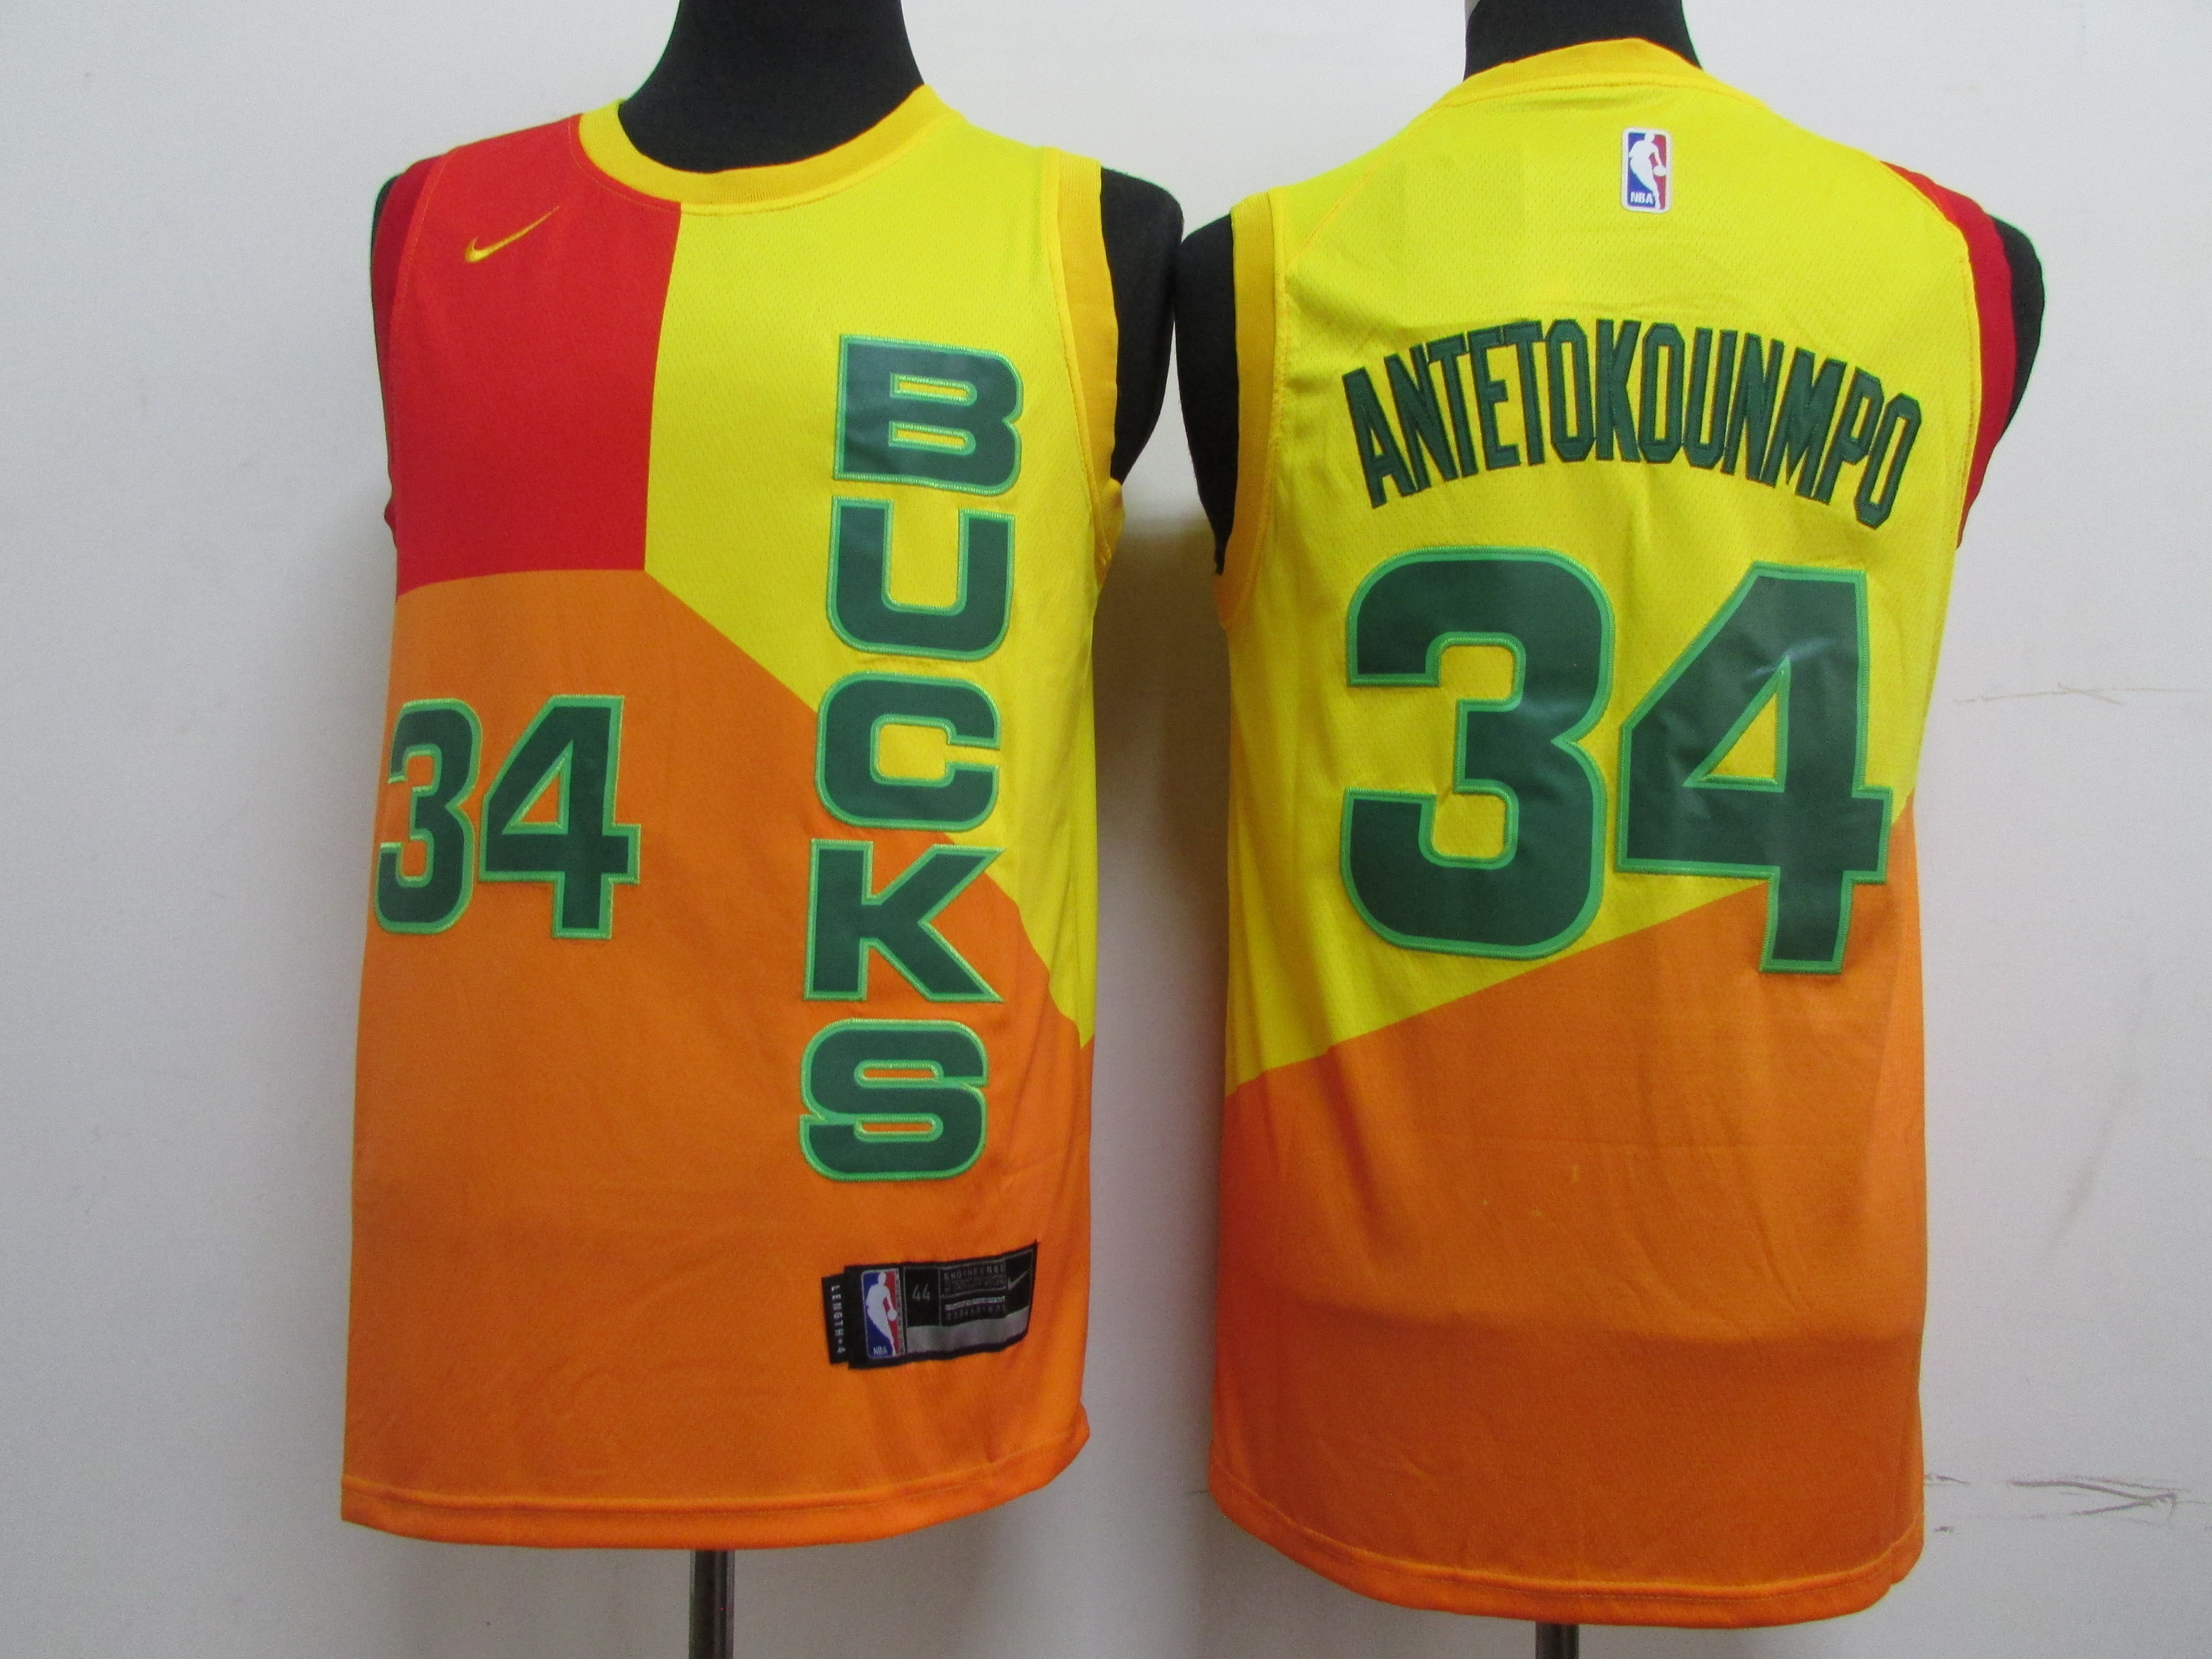 Bucks 34 Giannis Antetokounmpo Yellow 2018-19 City Edition Nike Swingman Jersey